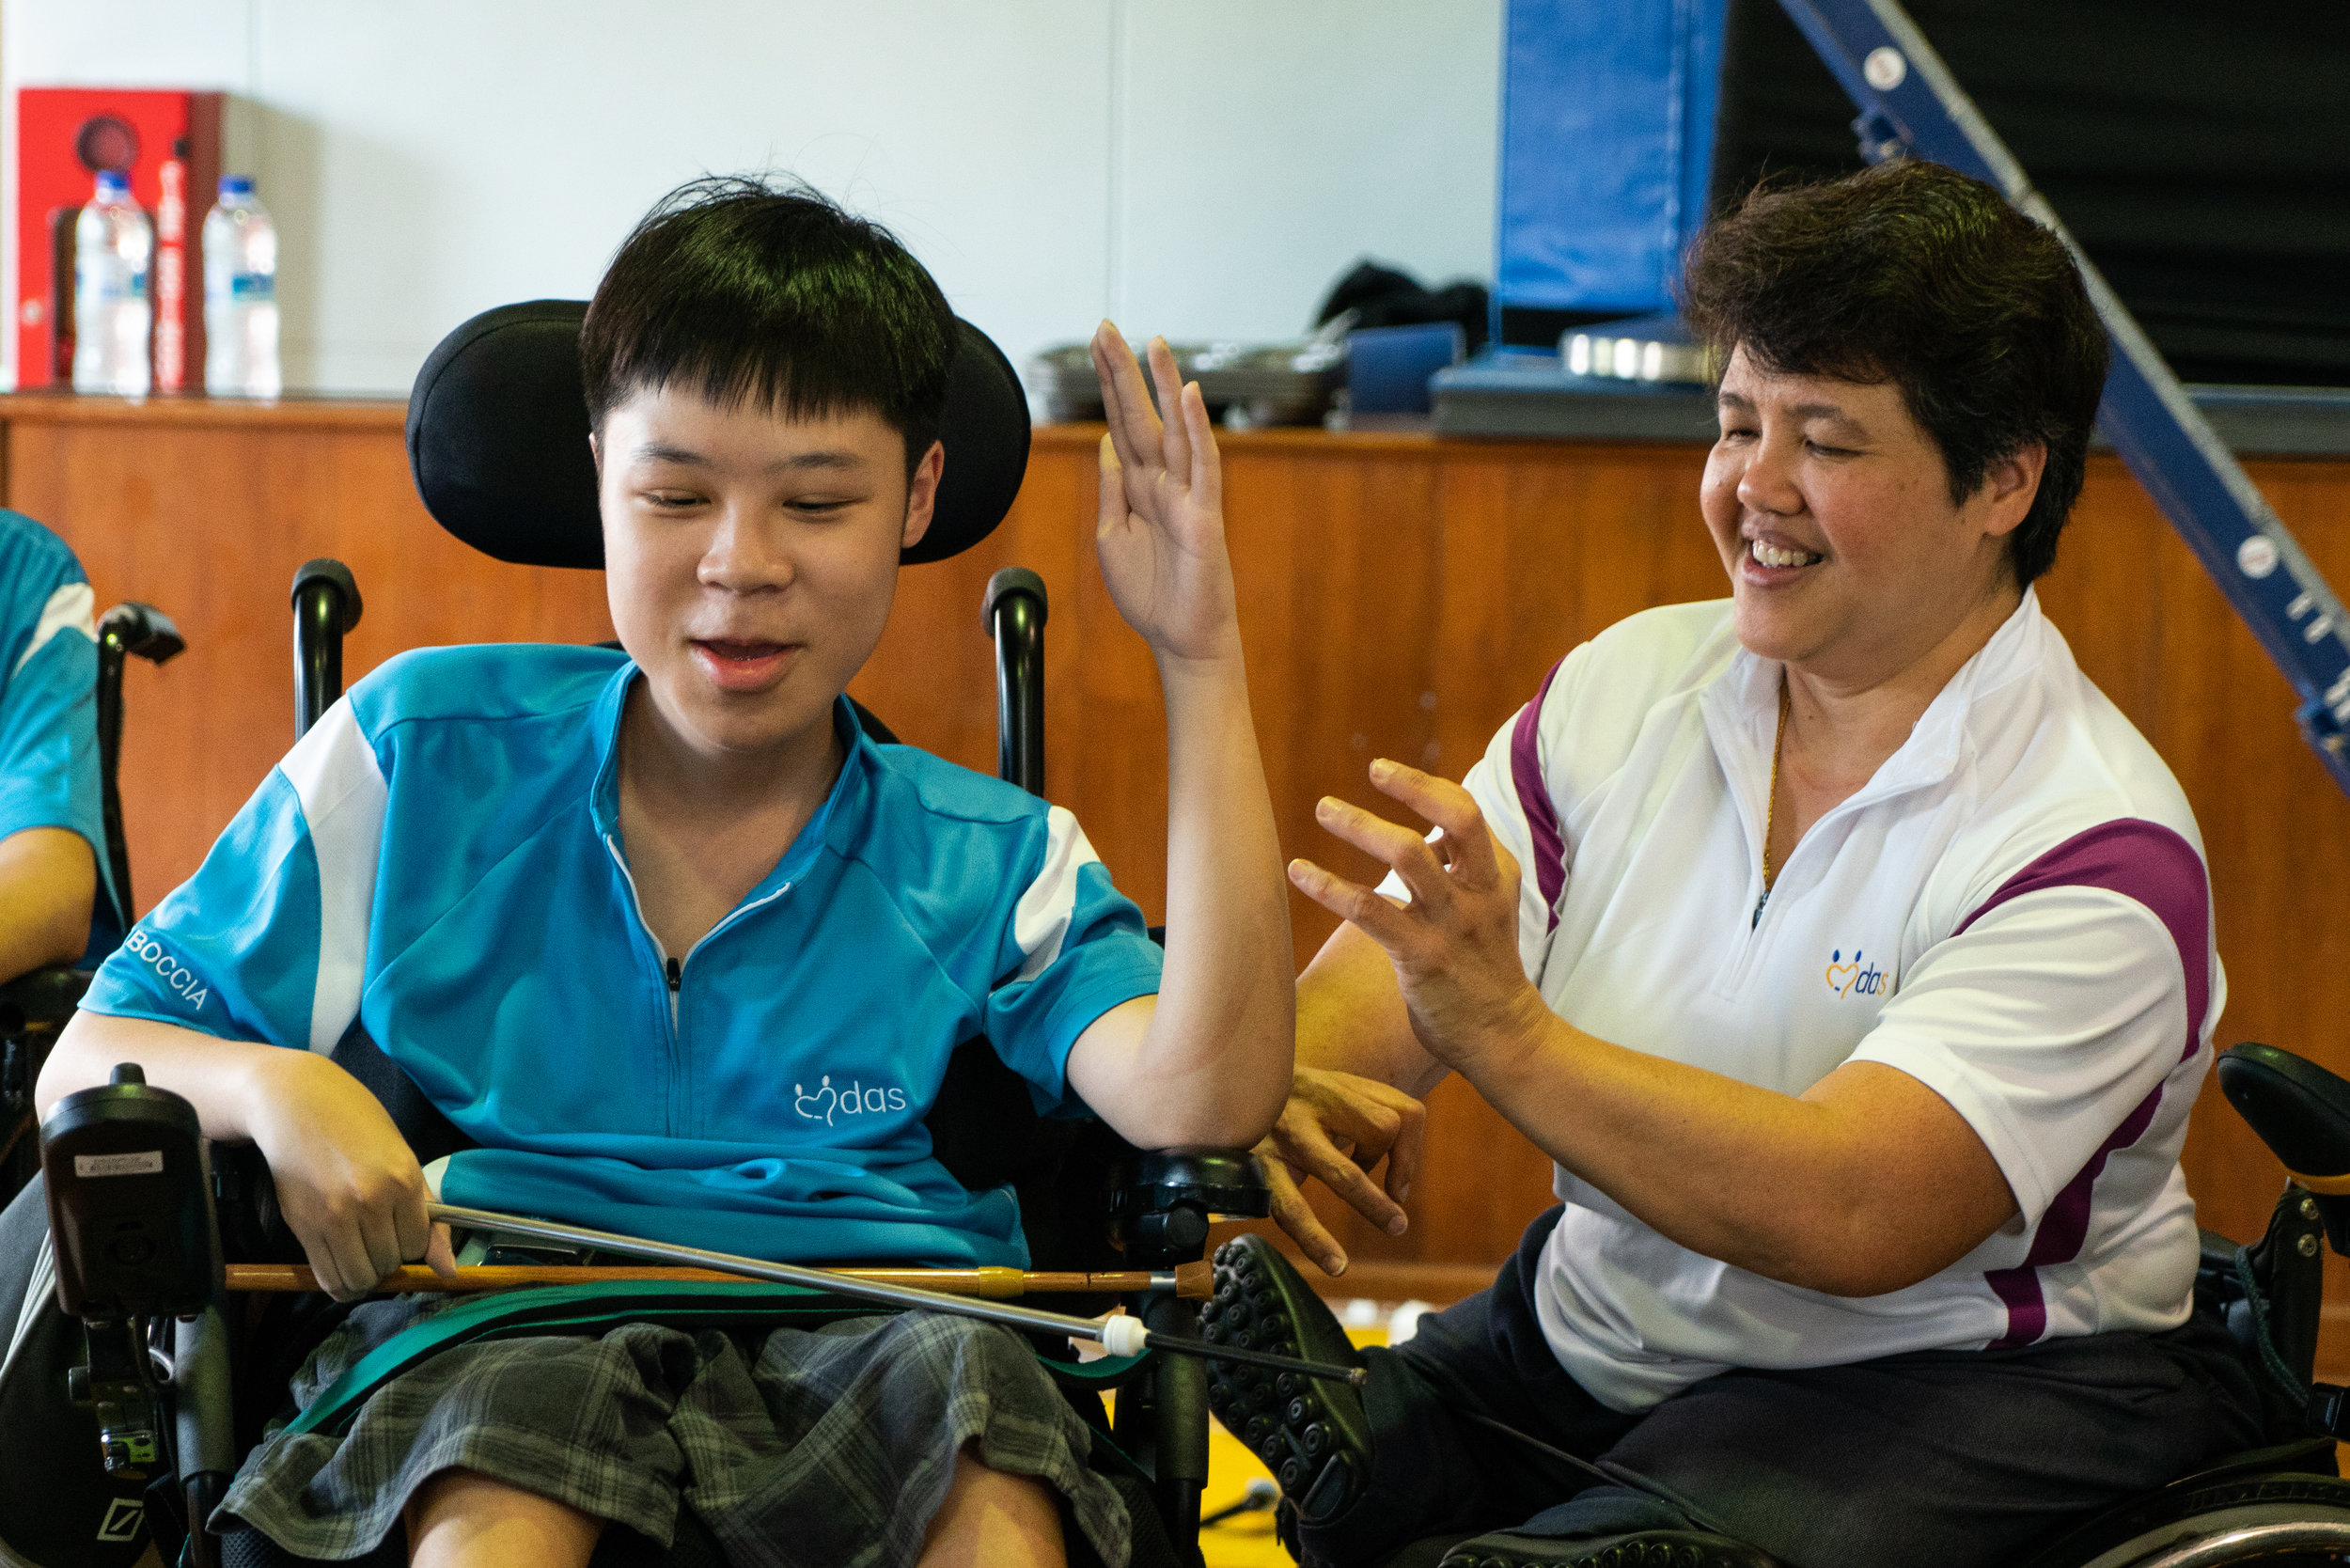 Judy having a couple of laughs with the MDAS members during their Boccia session.